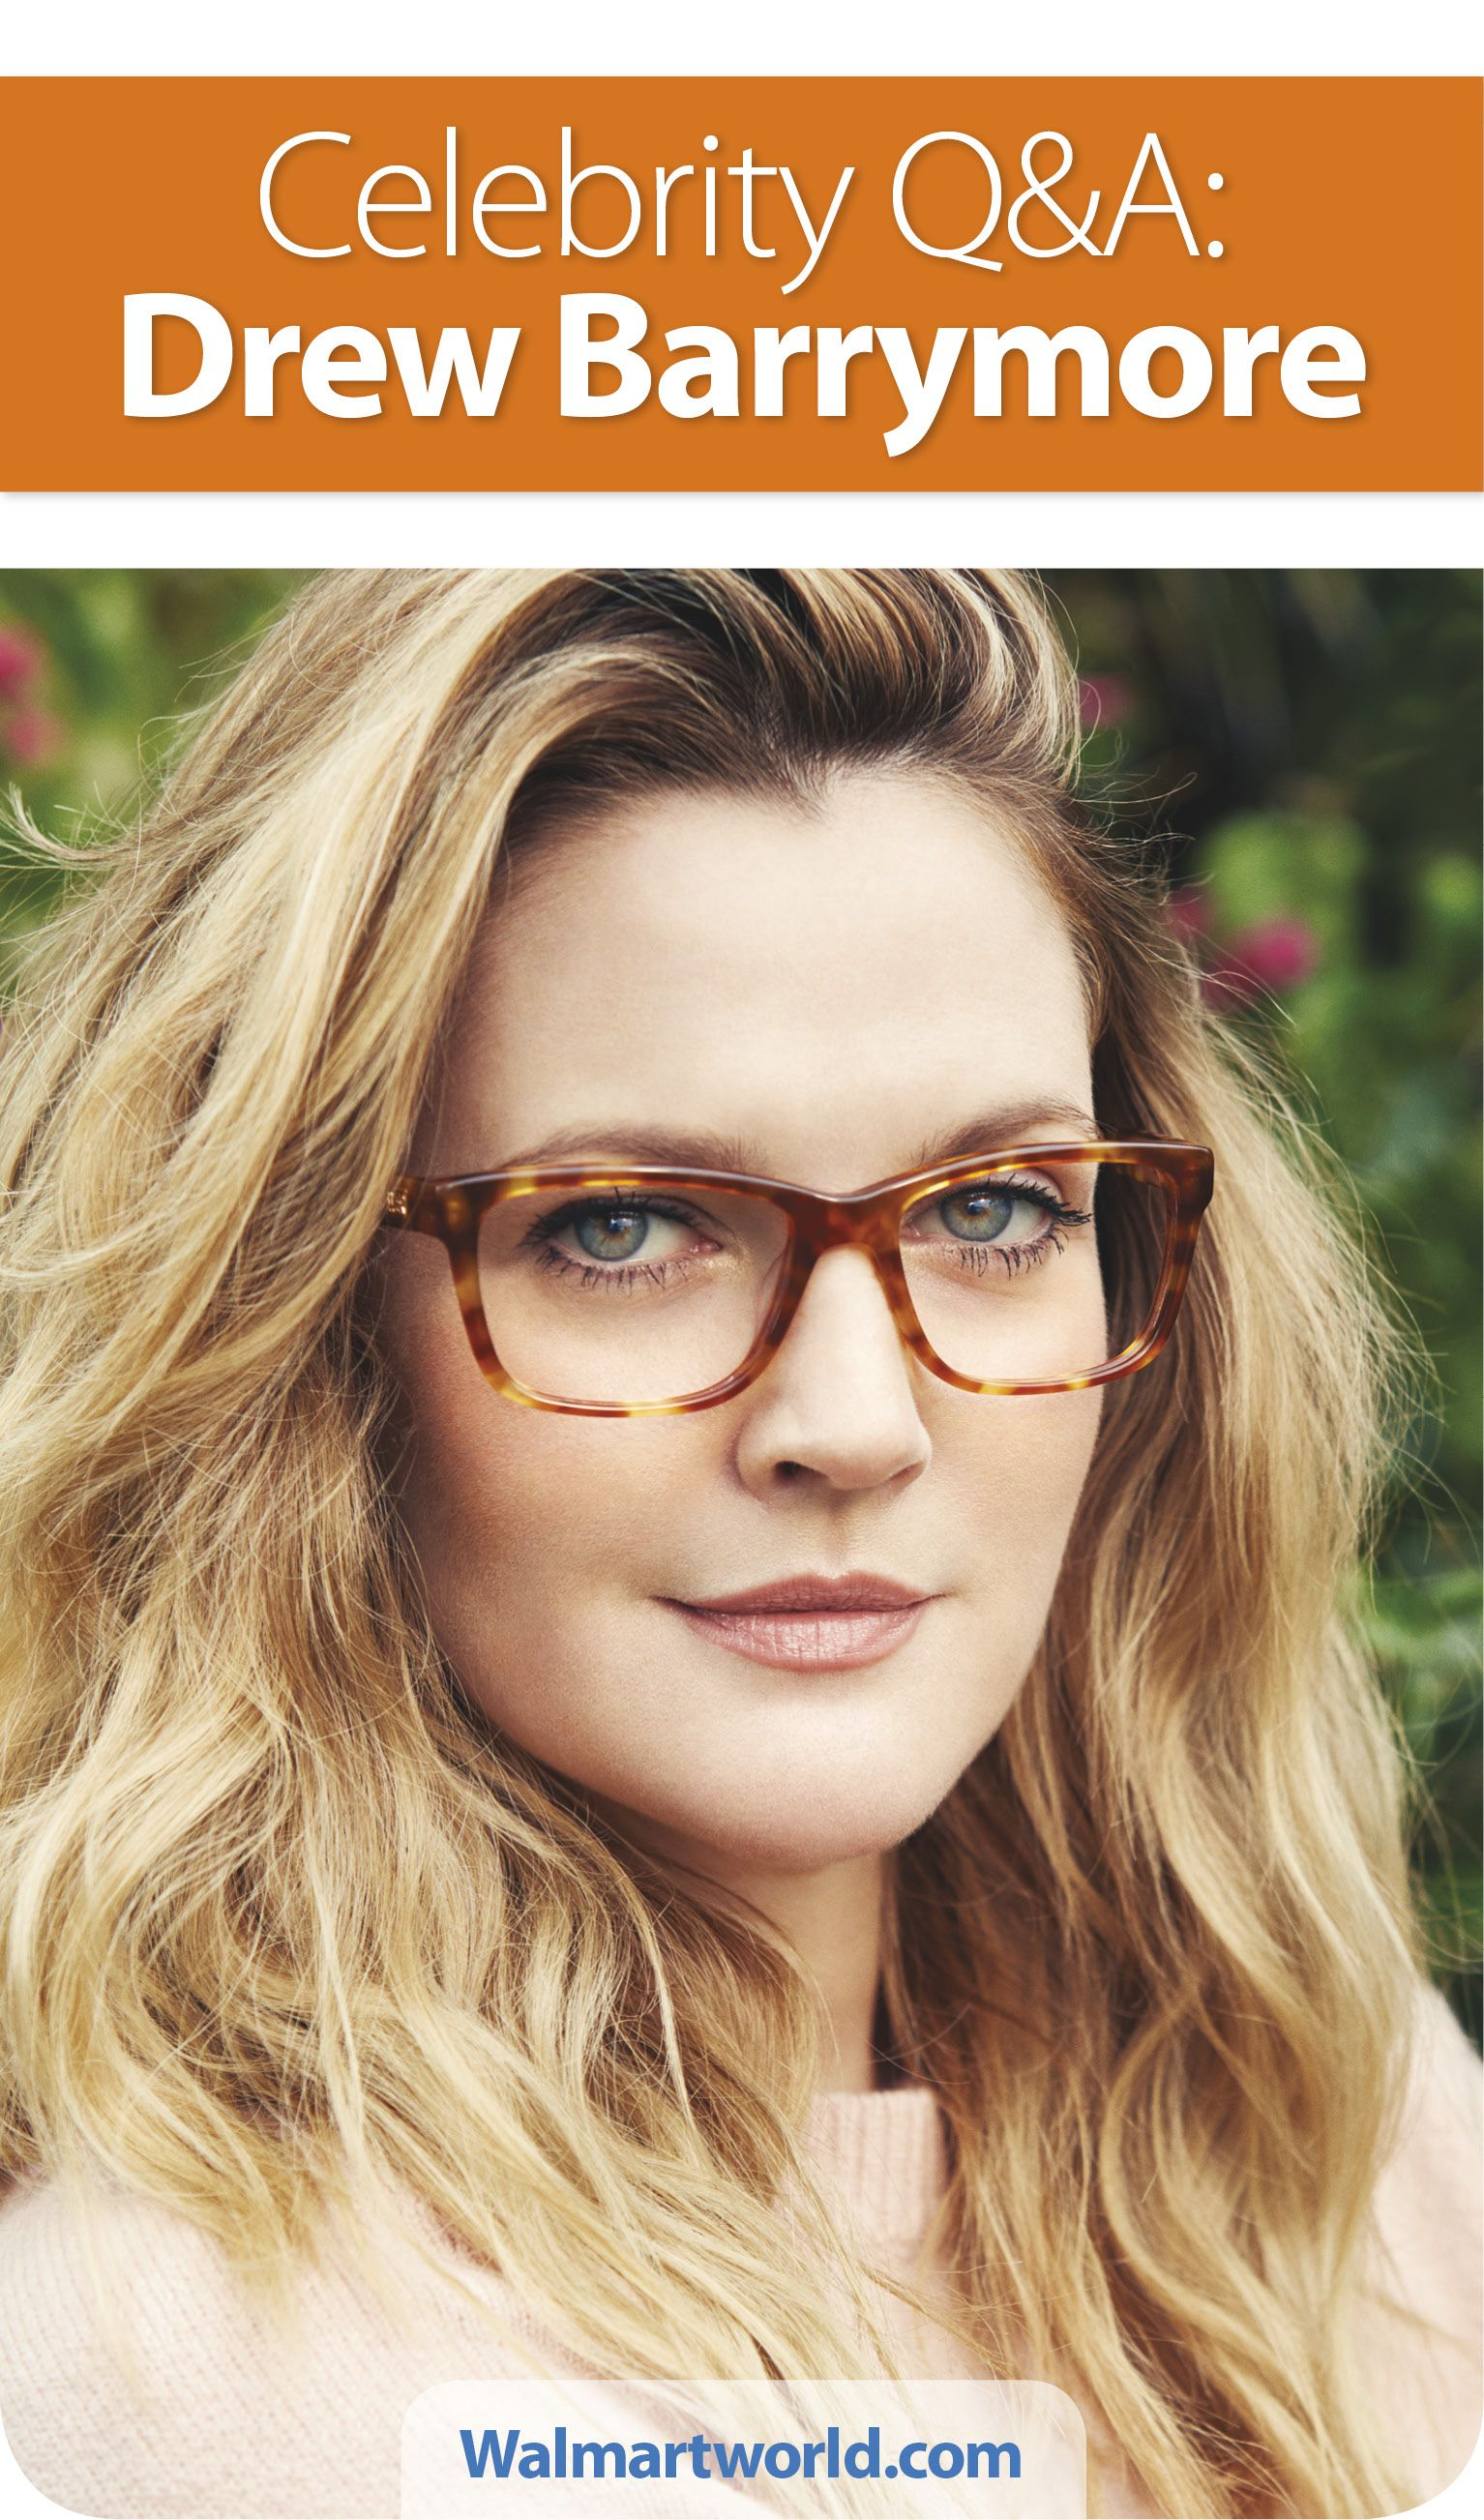 Drew Barrymore Dishes On Her New Flower Eyewear Sold Exclusively At